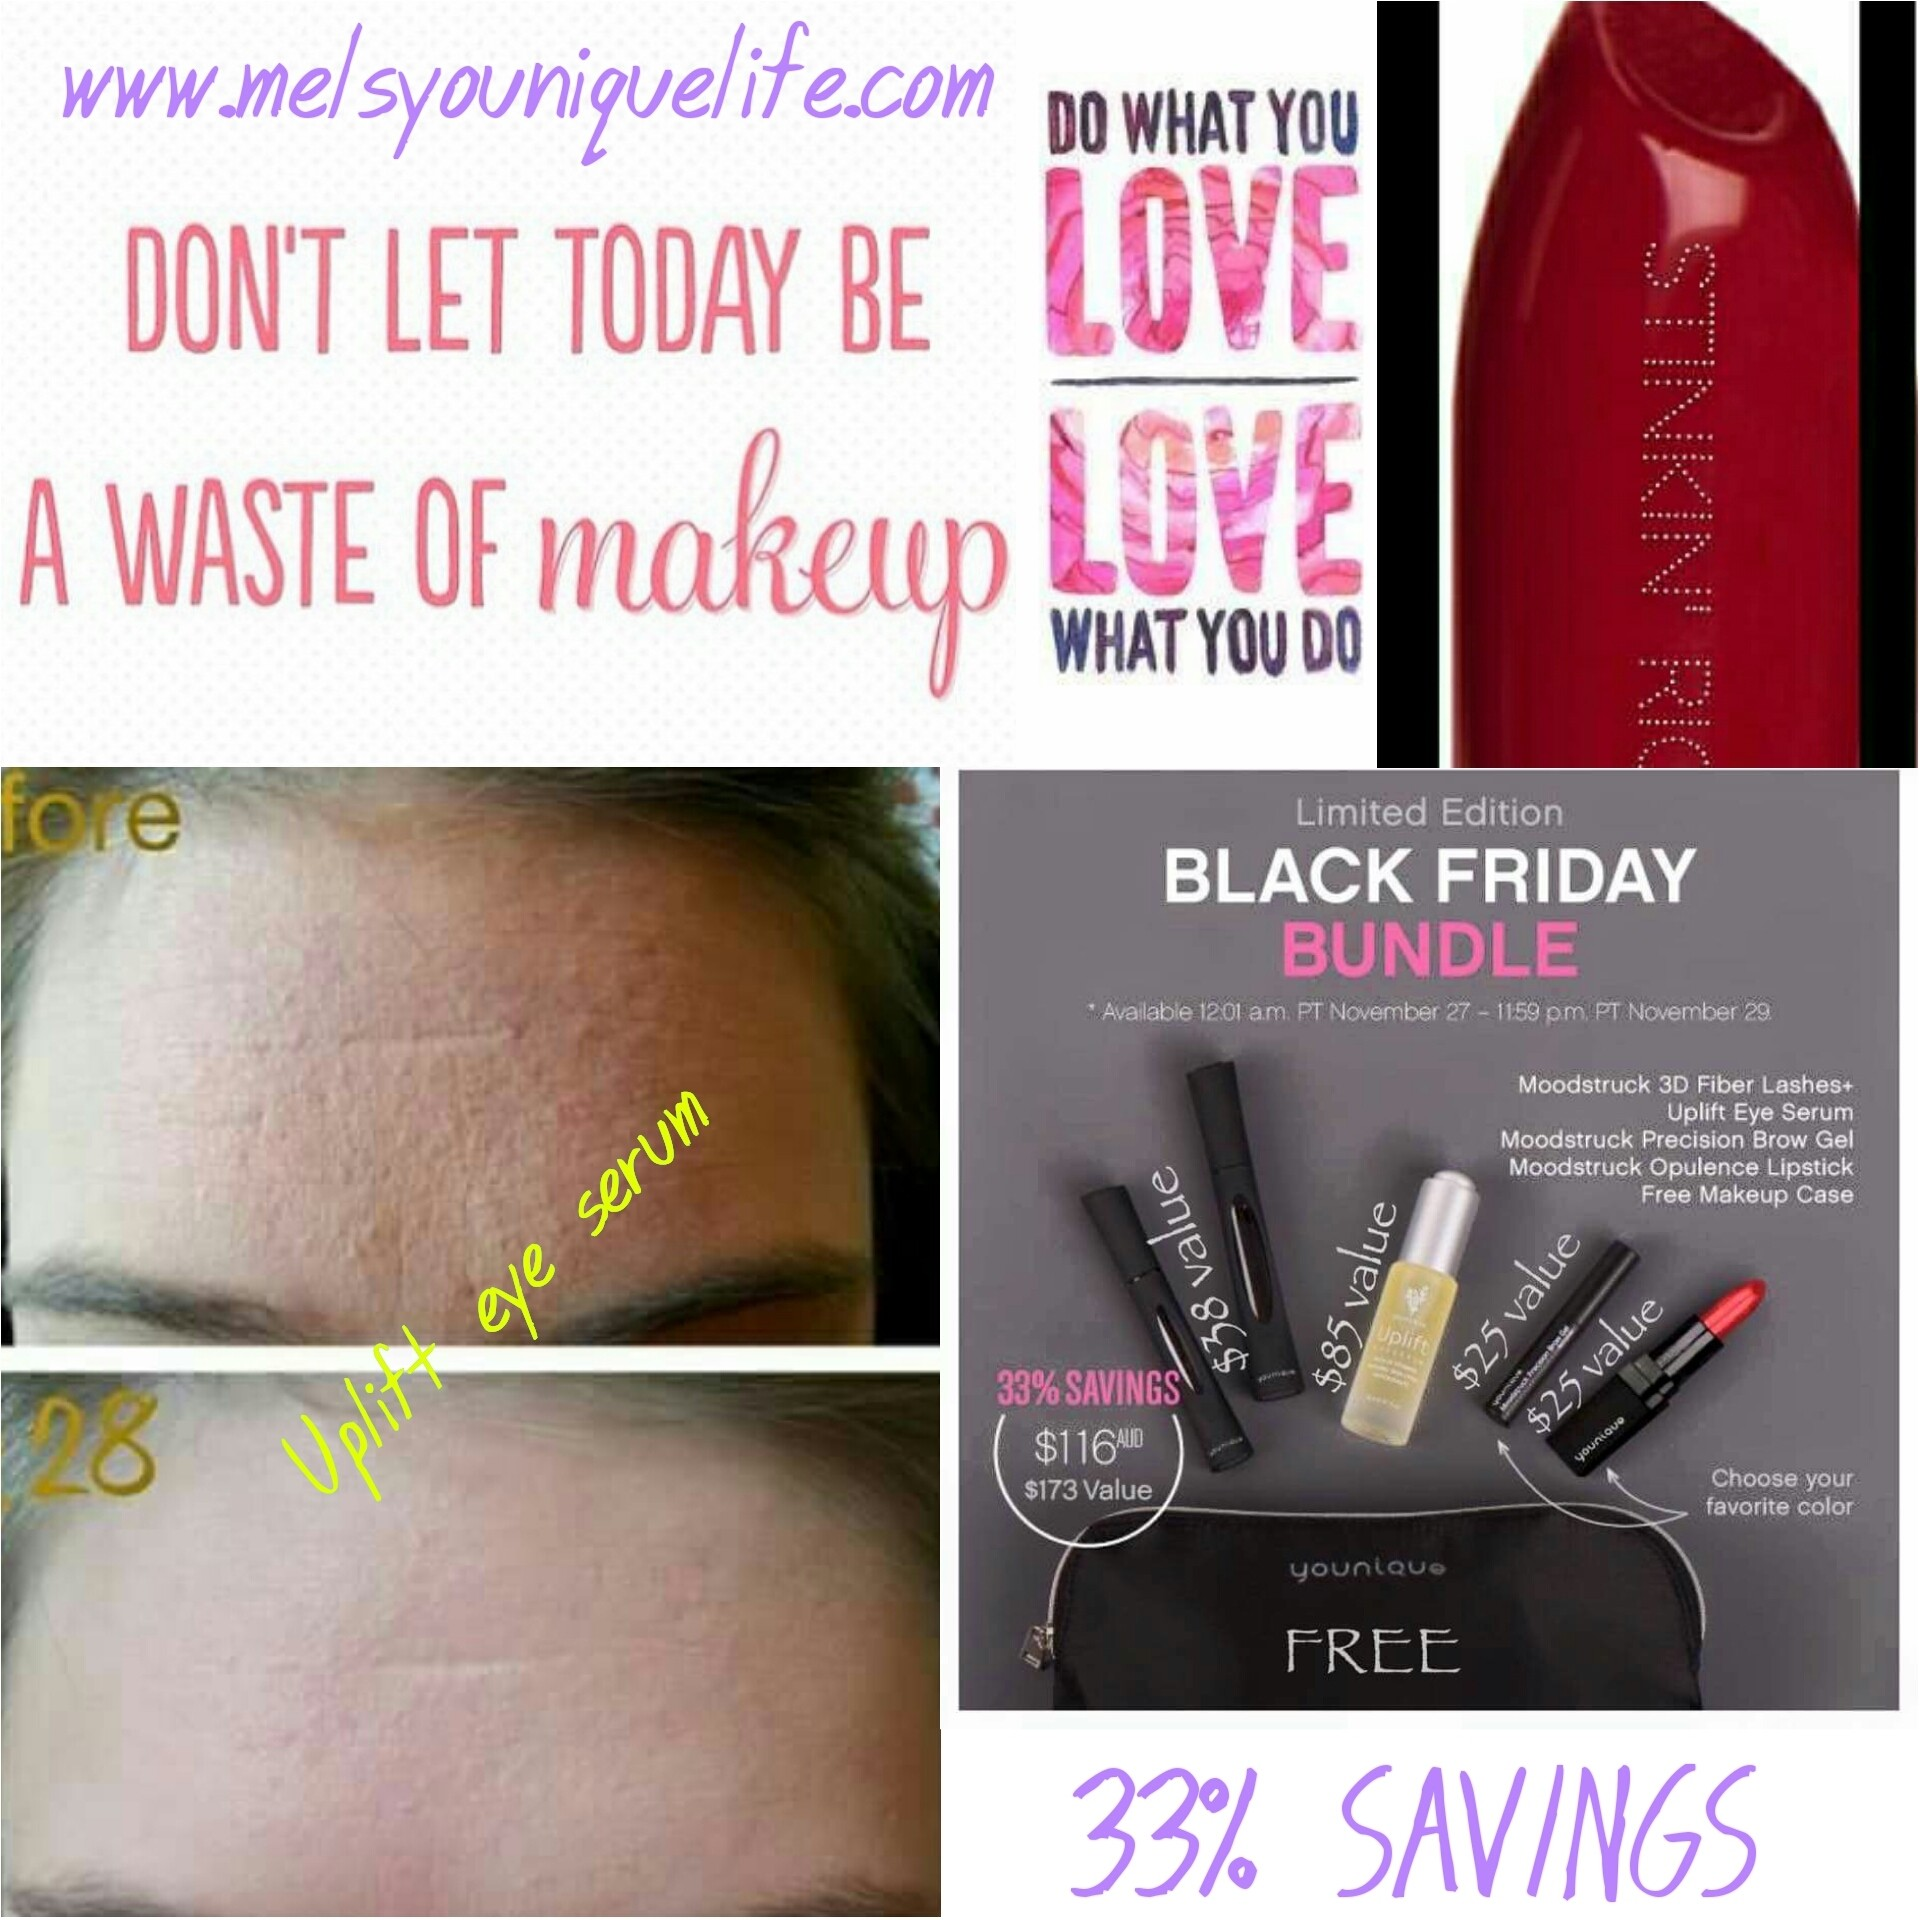 omg what are you doing? dont just sit there.... get online and get this AMAZING #blackfriday #special before its gone! #australia #UK #america #USA #germany #newzealand #mexico #canada all available delivered straight to your door... Get your girlfriend, mum, sister, lover, fiance, and even Grandma... THE best Present this Christmas!